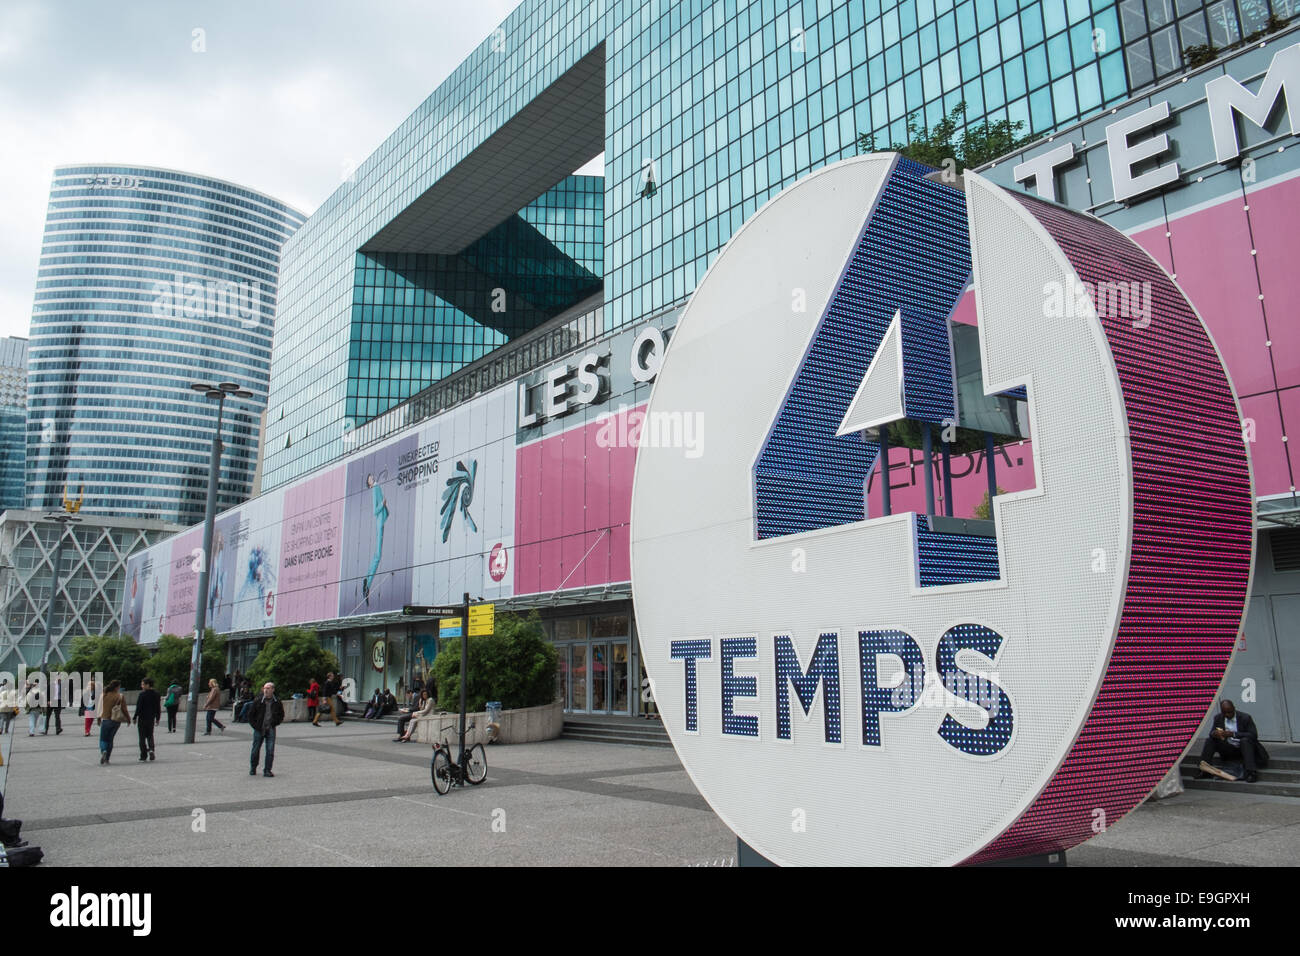 les quatre temps four seasons shopping centre at la defense stock photo royalty free image. Black Bedroom Furniture Sets. Home Design Ideas